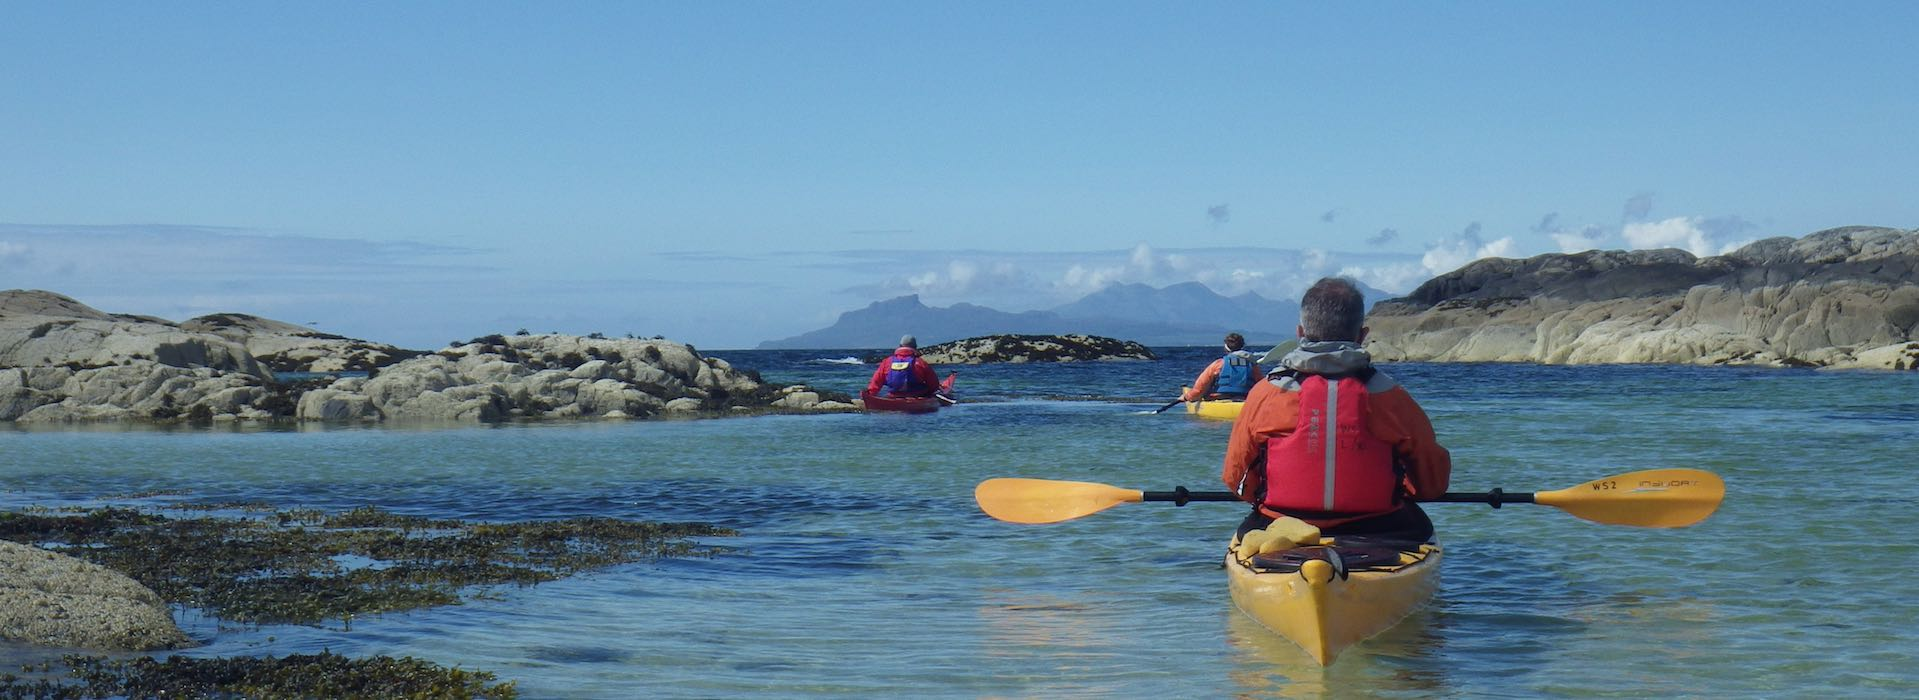 Sea Kayaking OR River Kayaking: What's the Difference